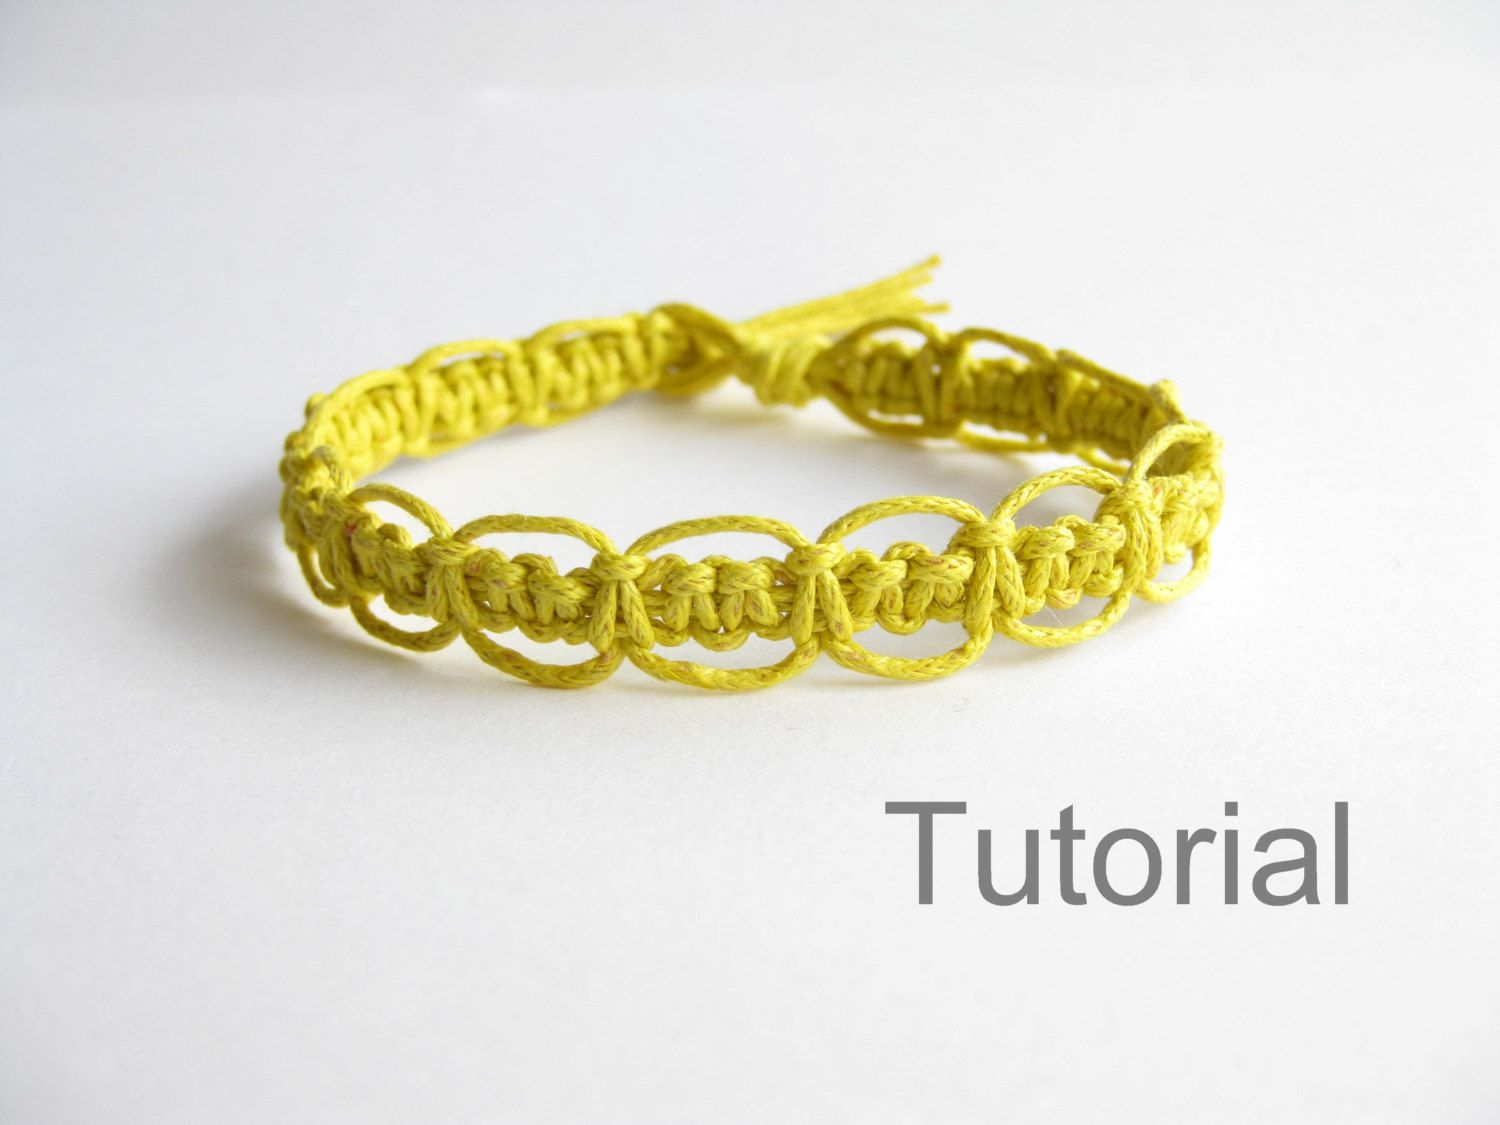 Step by step macrame bracelet pattern pdf by Knotonlyknots on Etsy, $3.99